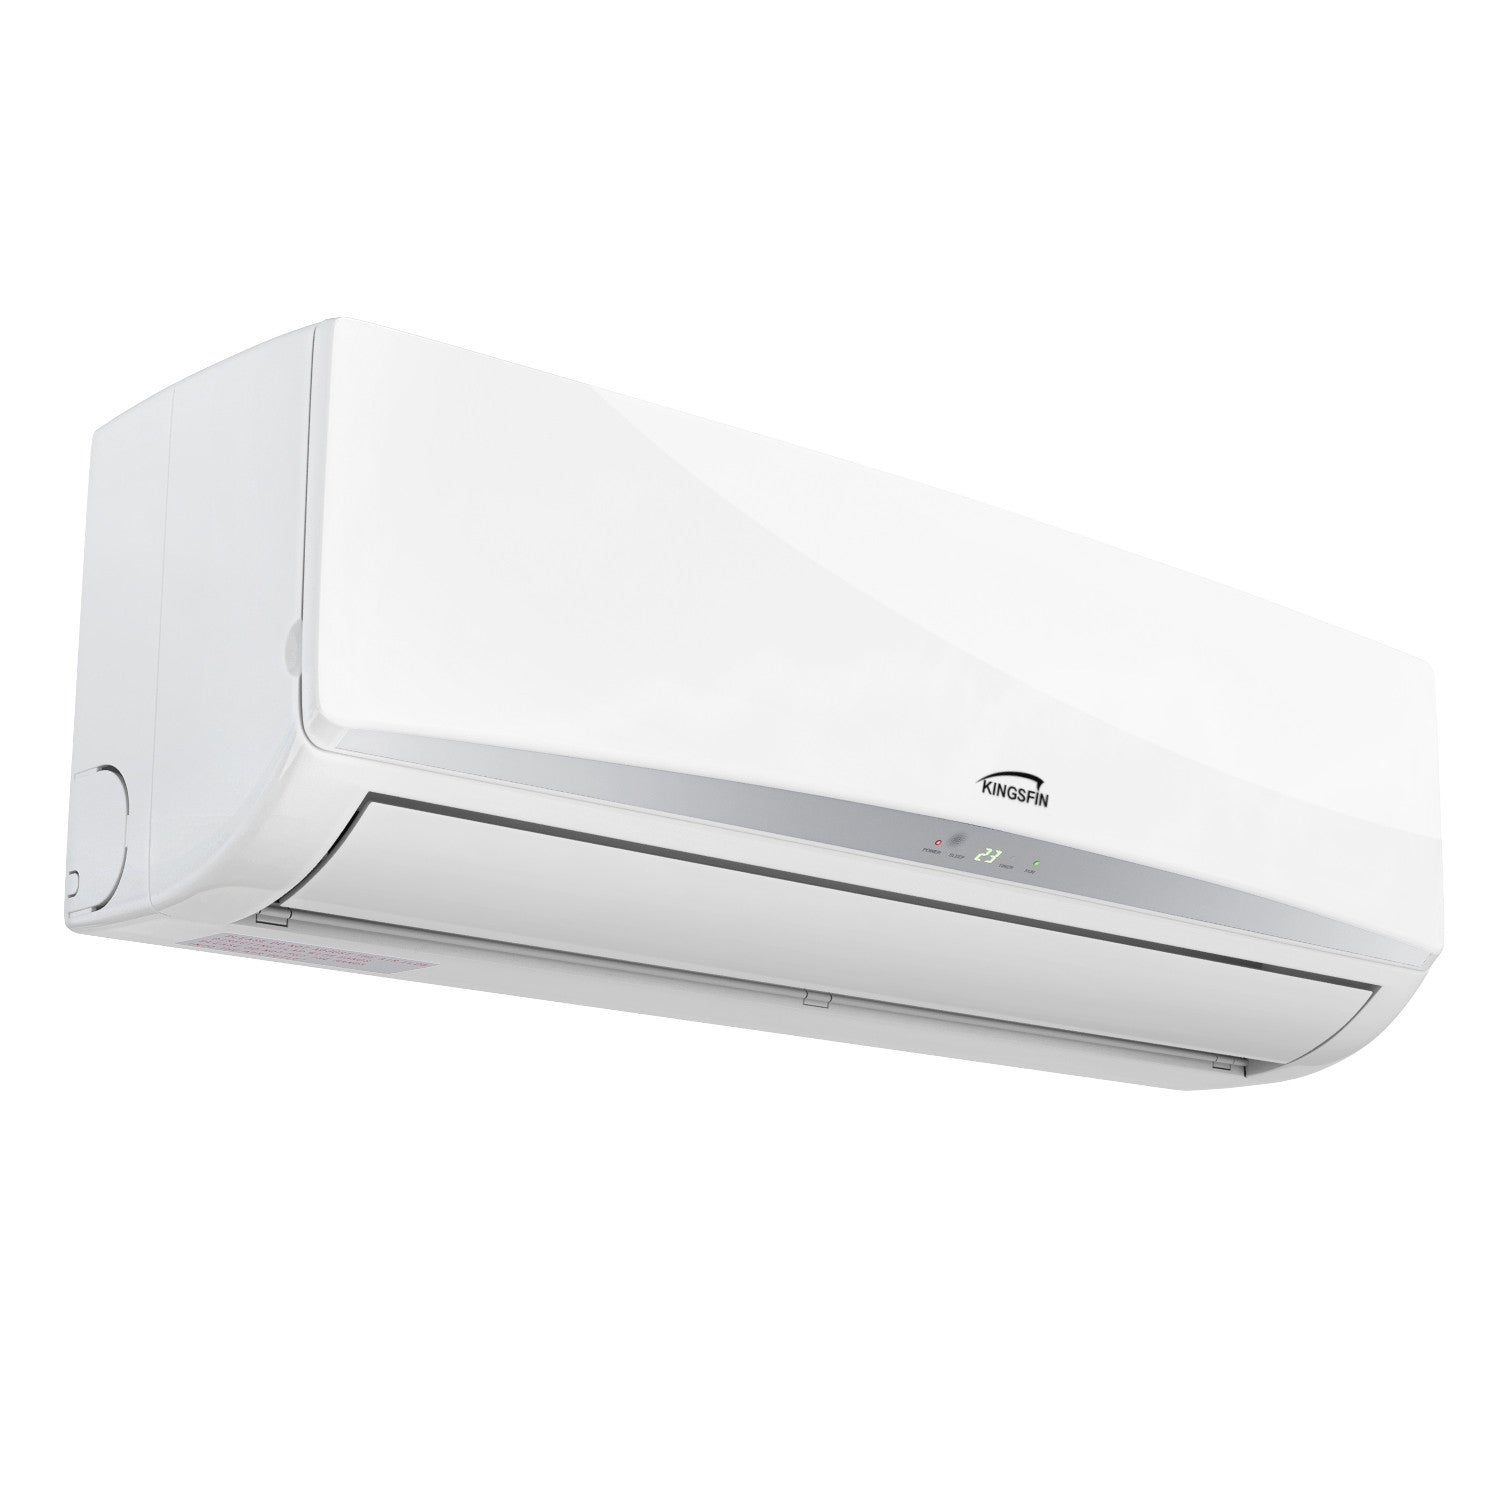 Kingsfin Mini Split Ductless Ac Air Conditioner And Heat